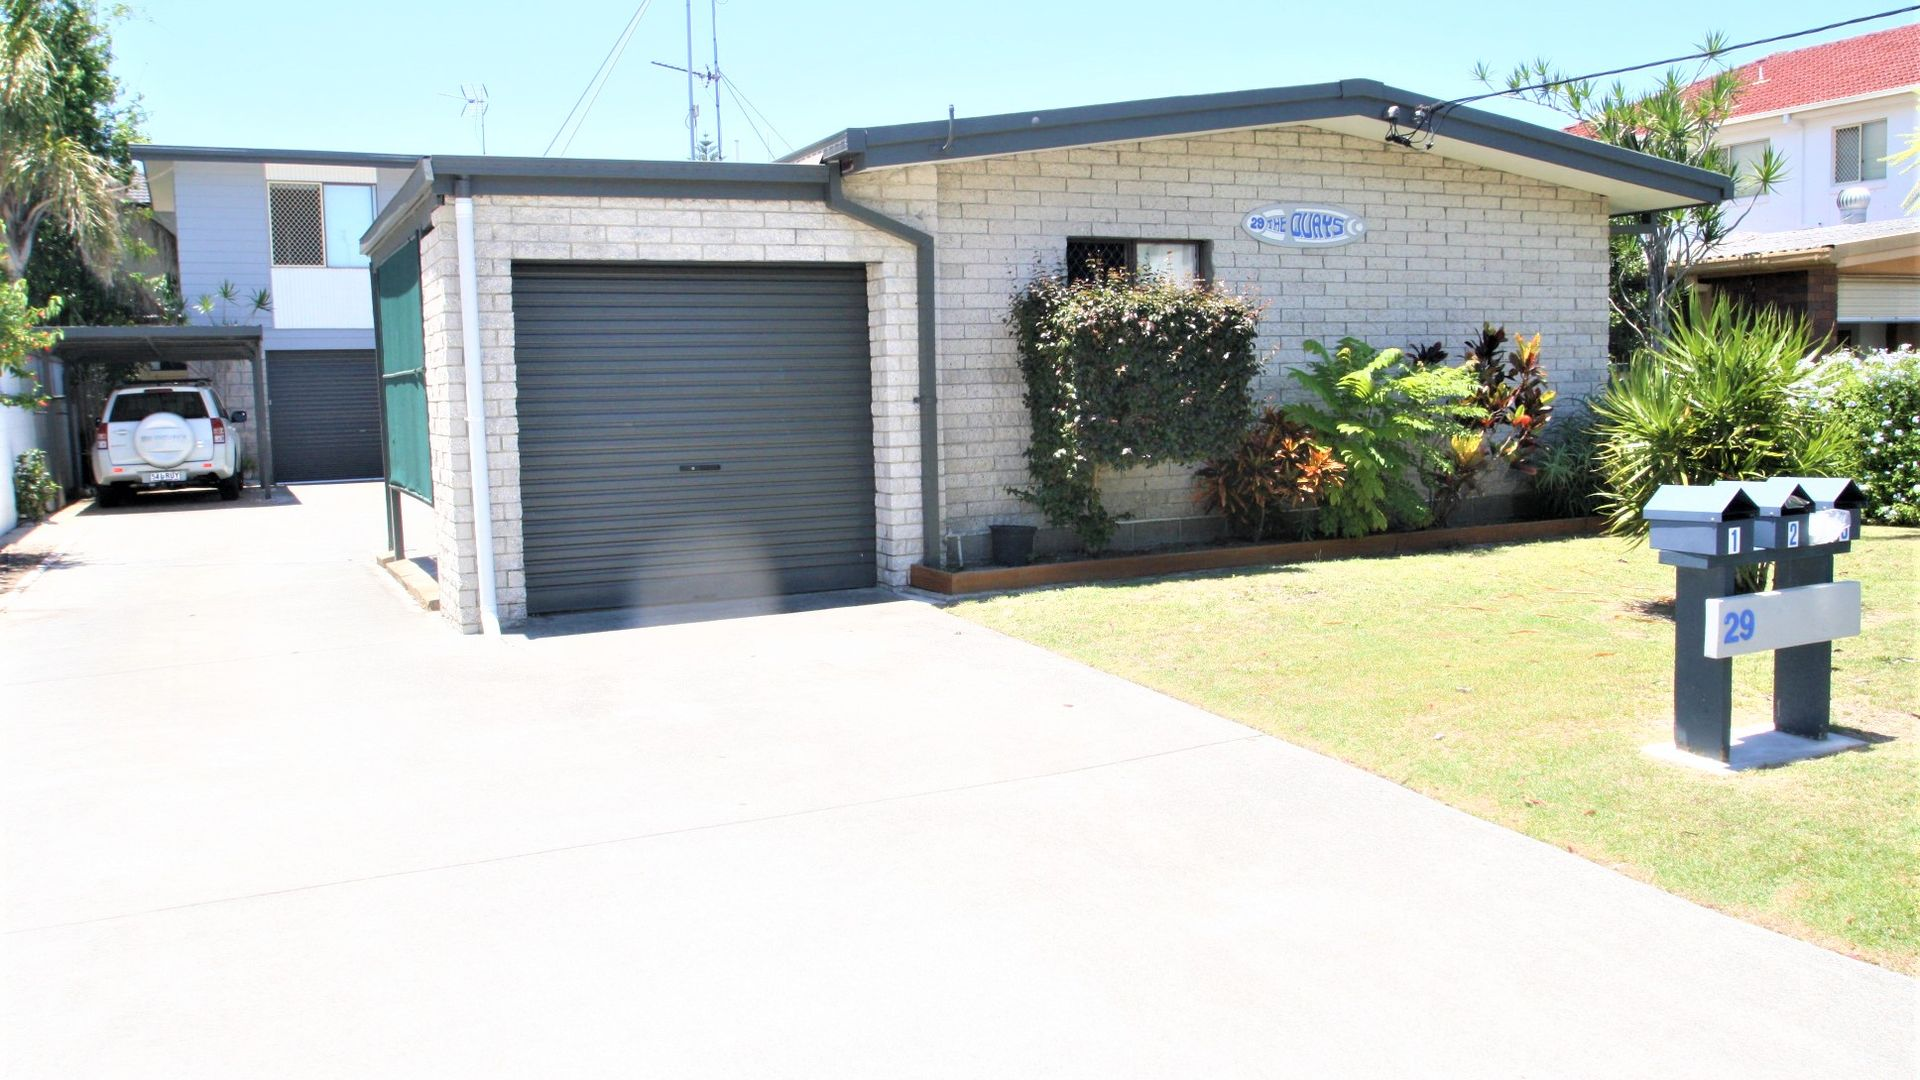 2/29 Teal Avenue, Paradise Point QLD 4216, Image 1